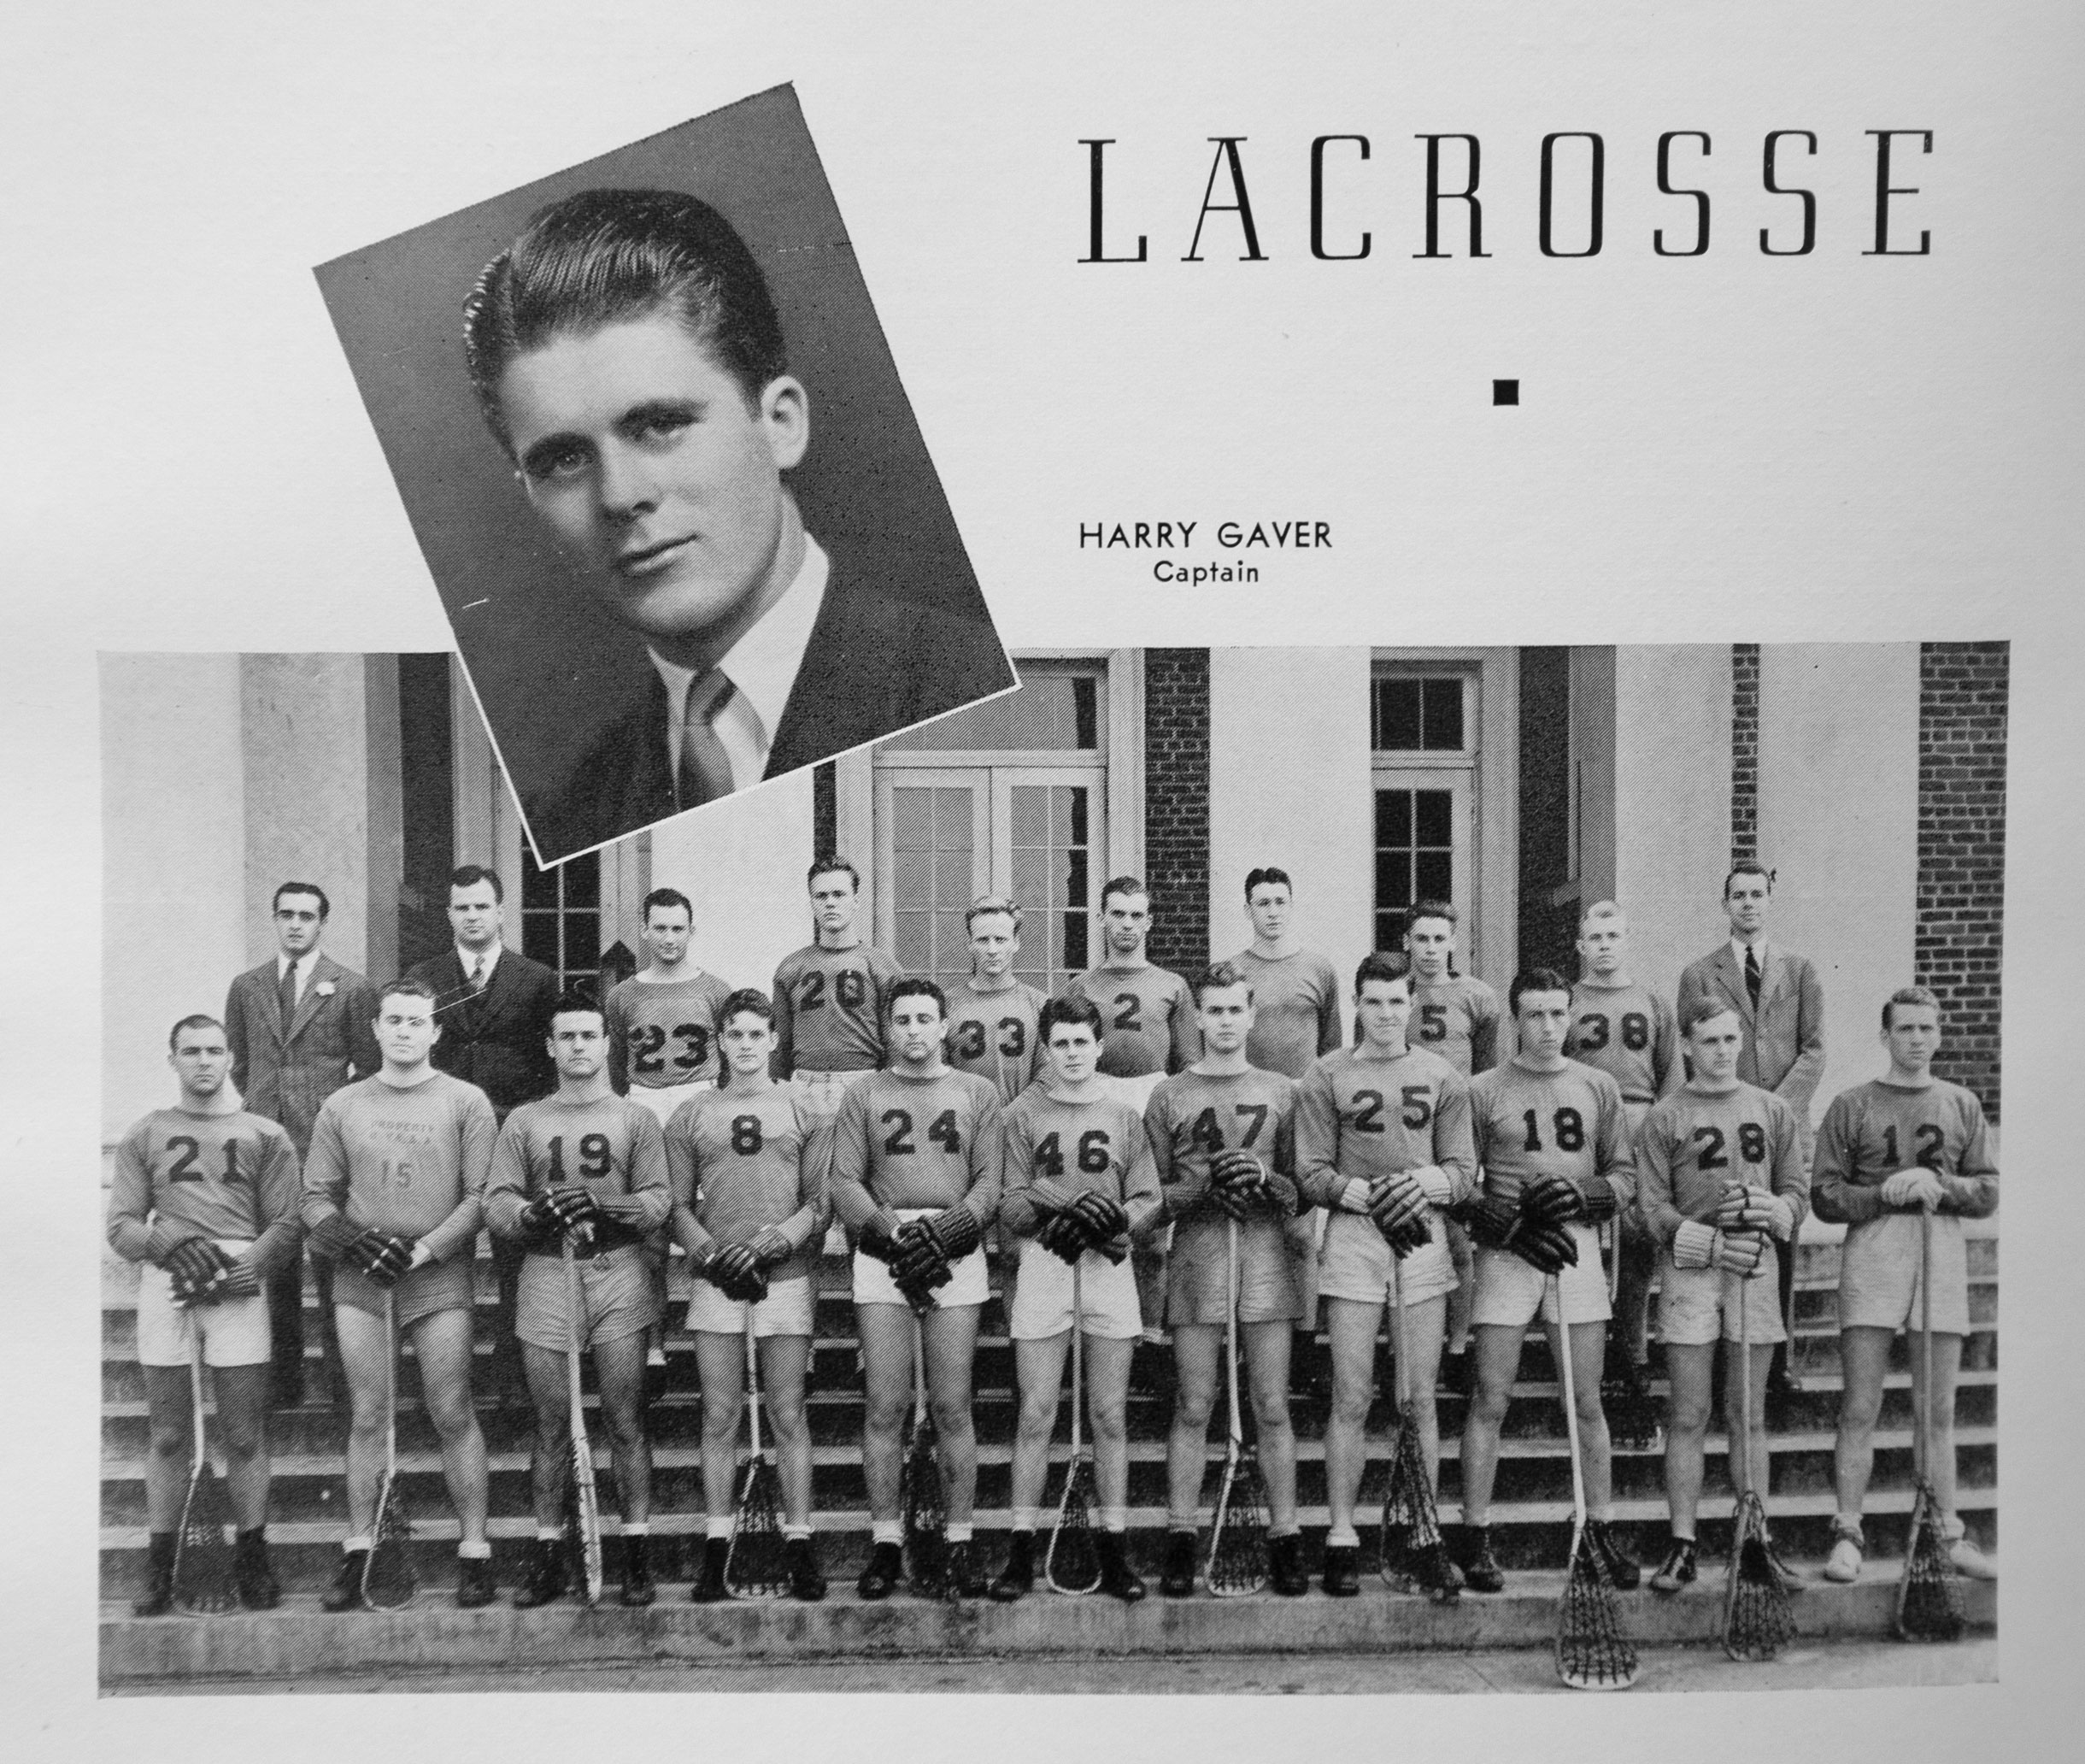 Gaver was captain of the 1939 lacrosse team. (Image: Corks and Curls)